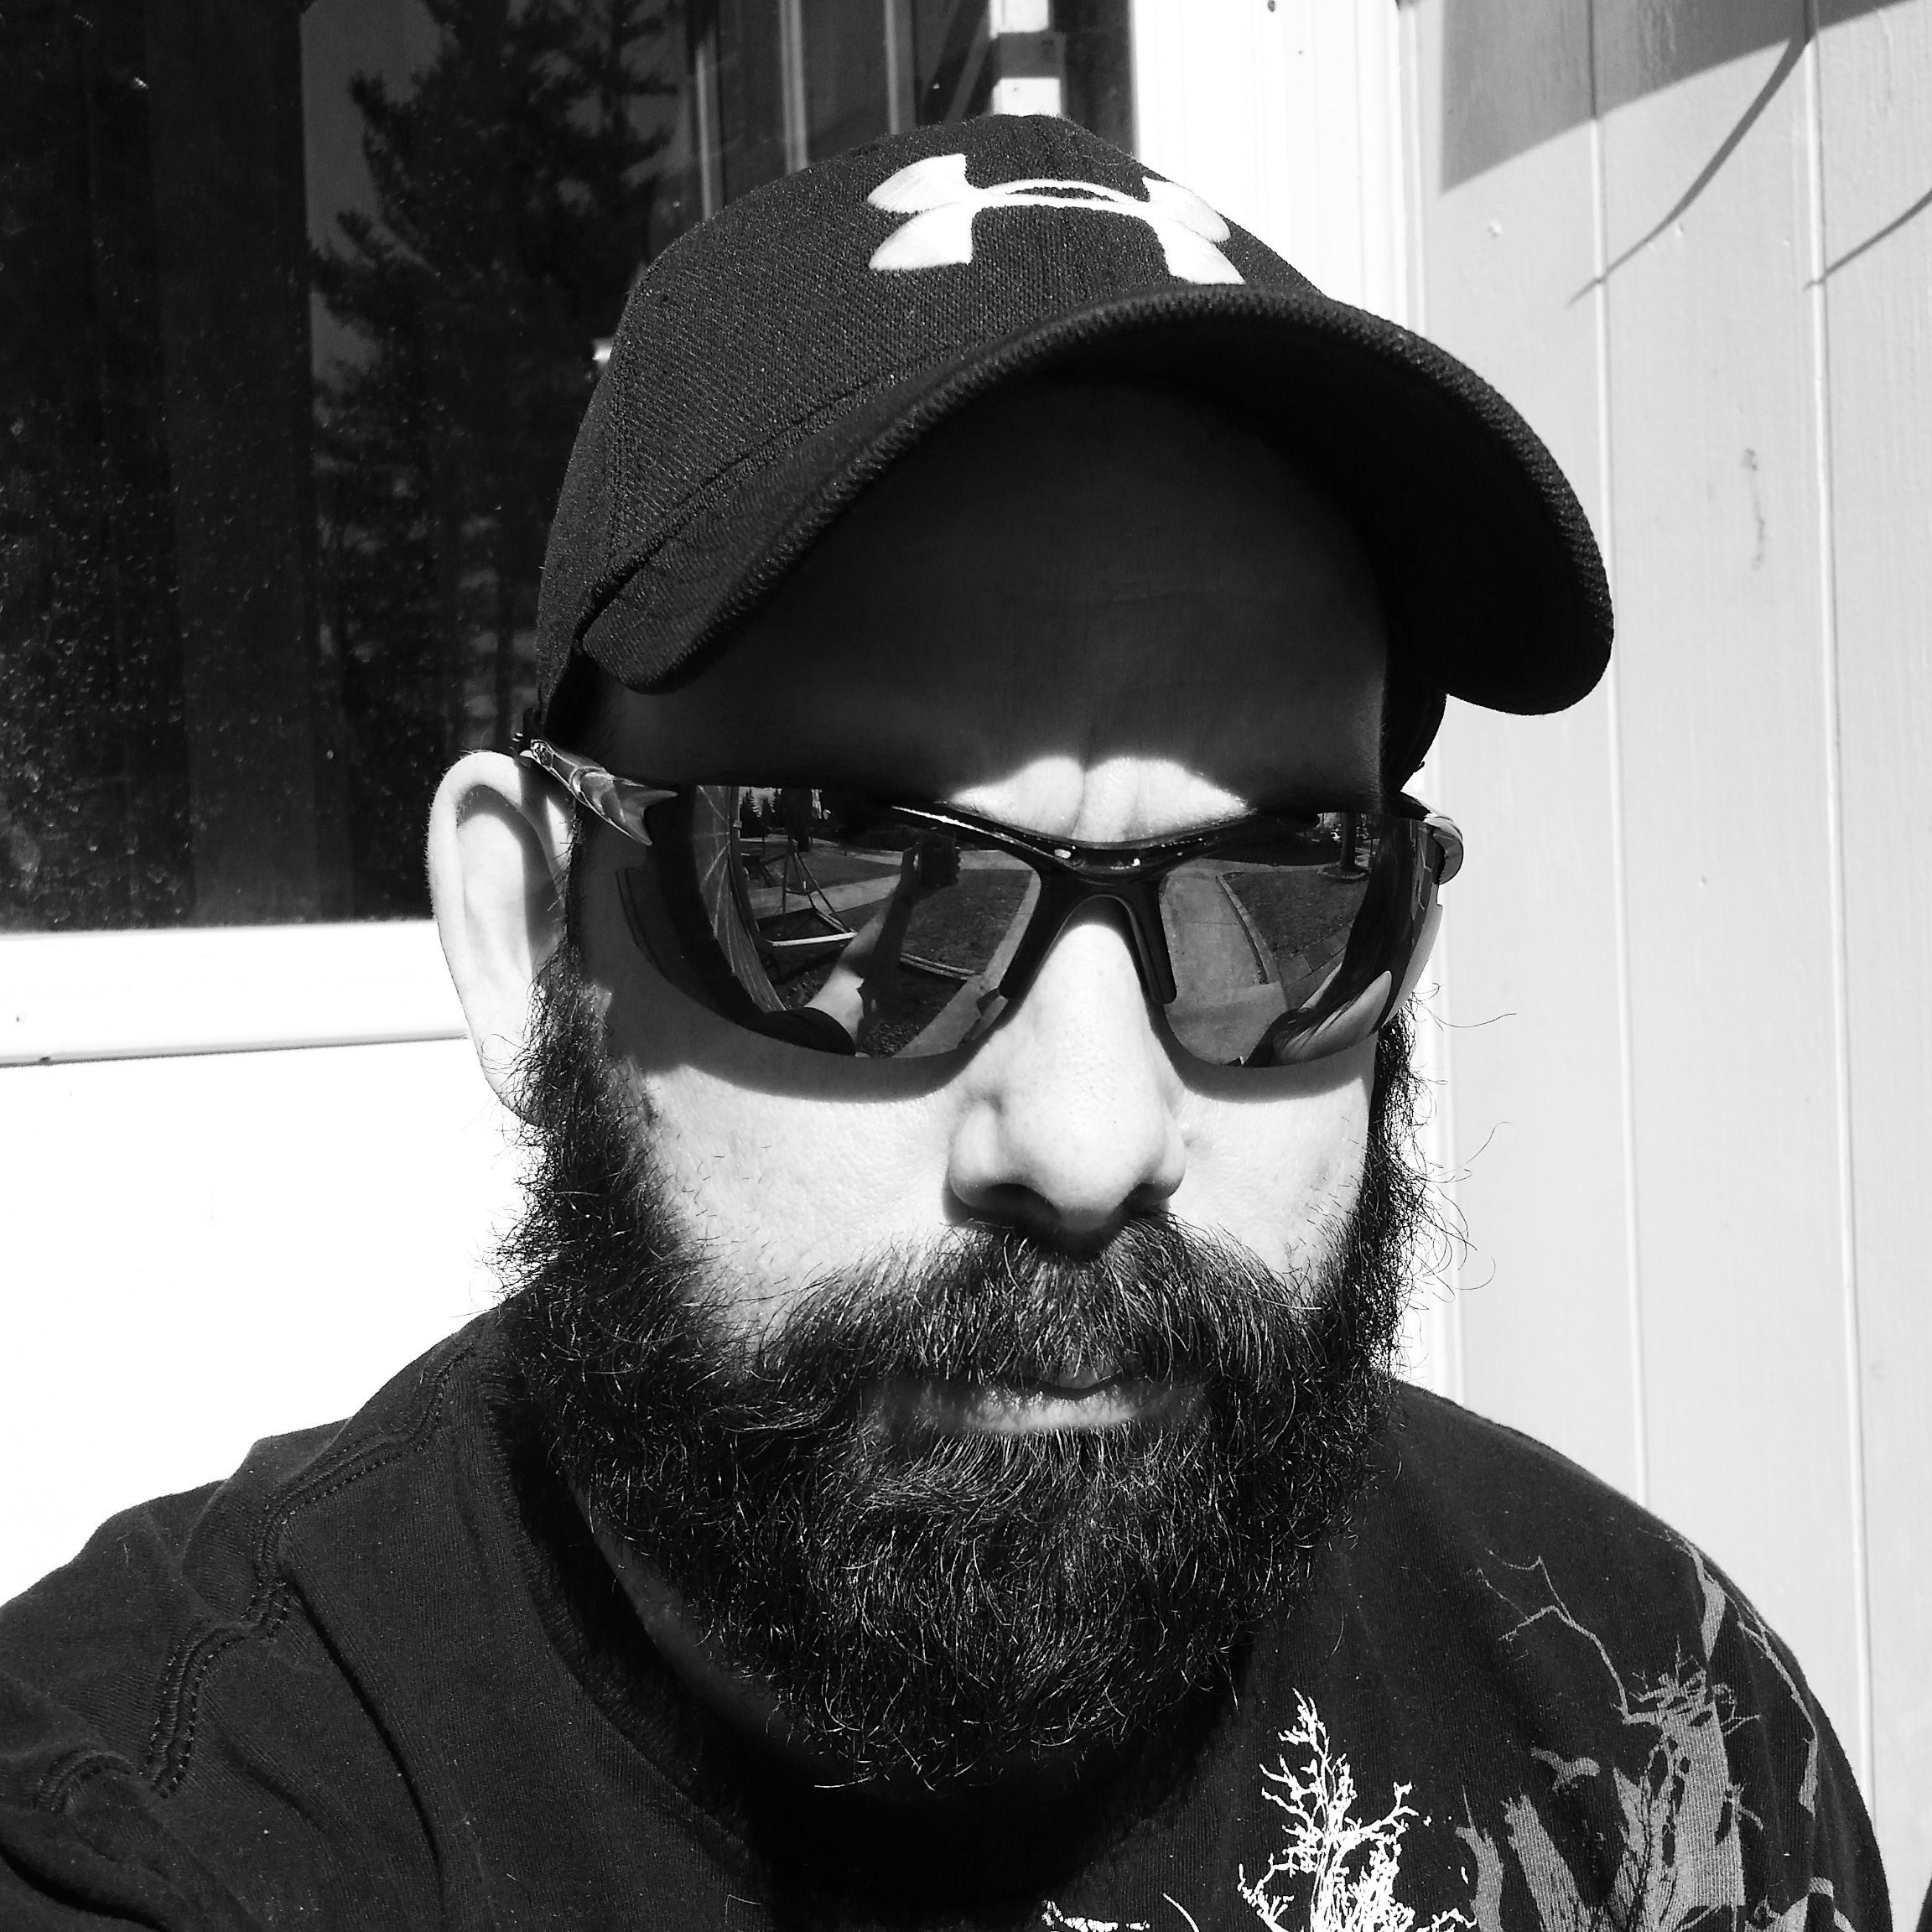 Visit Ratemybeard.se and check out @tophersbeardco - http://ratemybeard.se/tophersbeardco/ - support #heartbeard - Don't forget to vote, comment and please share this with your friends.